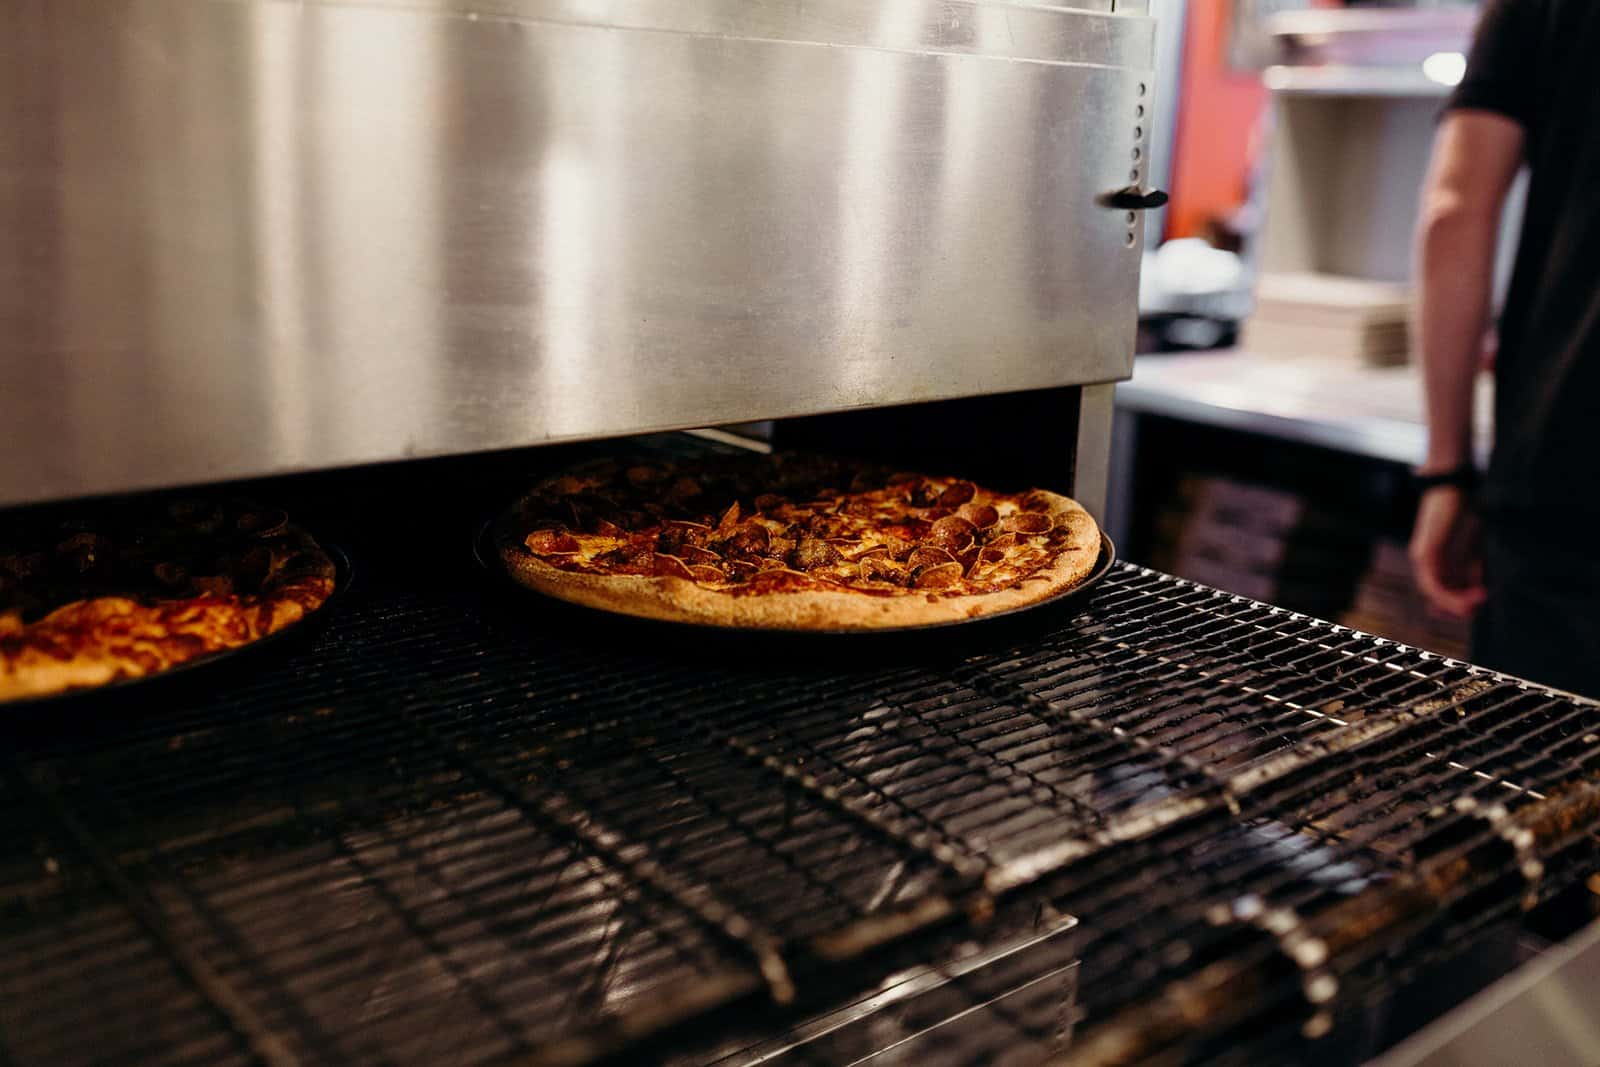 Park Street Pizza / Commercial Shoot 309